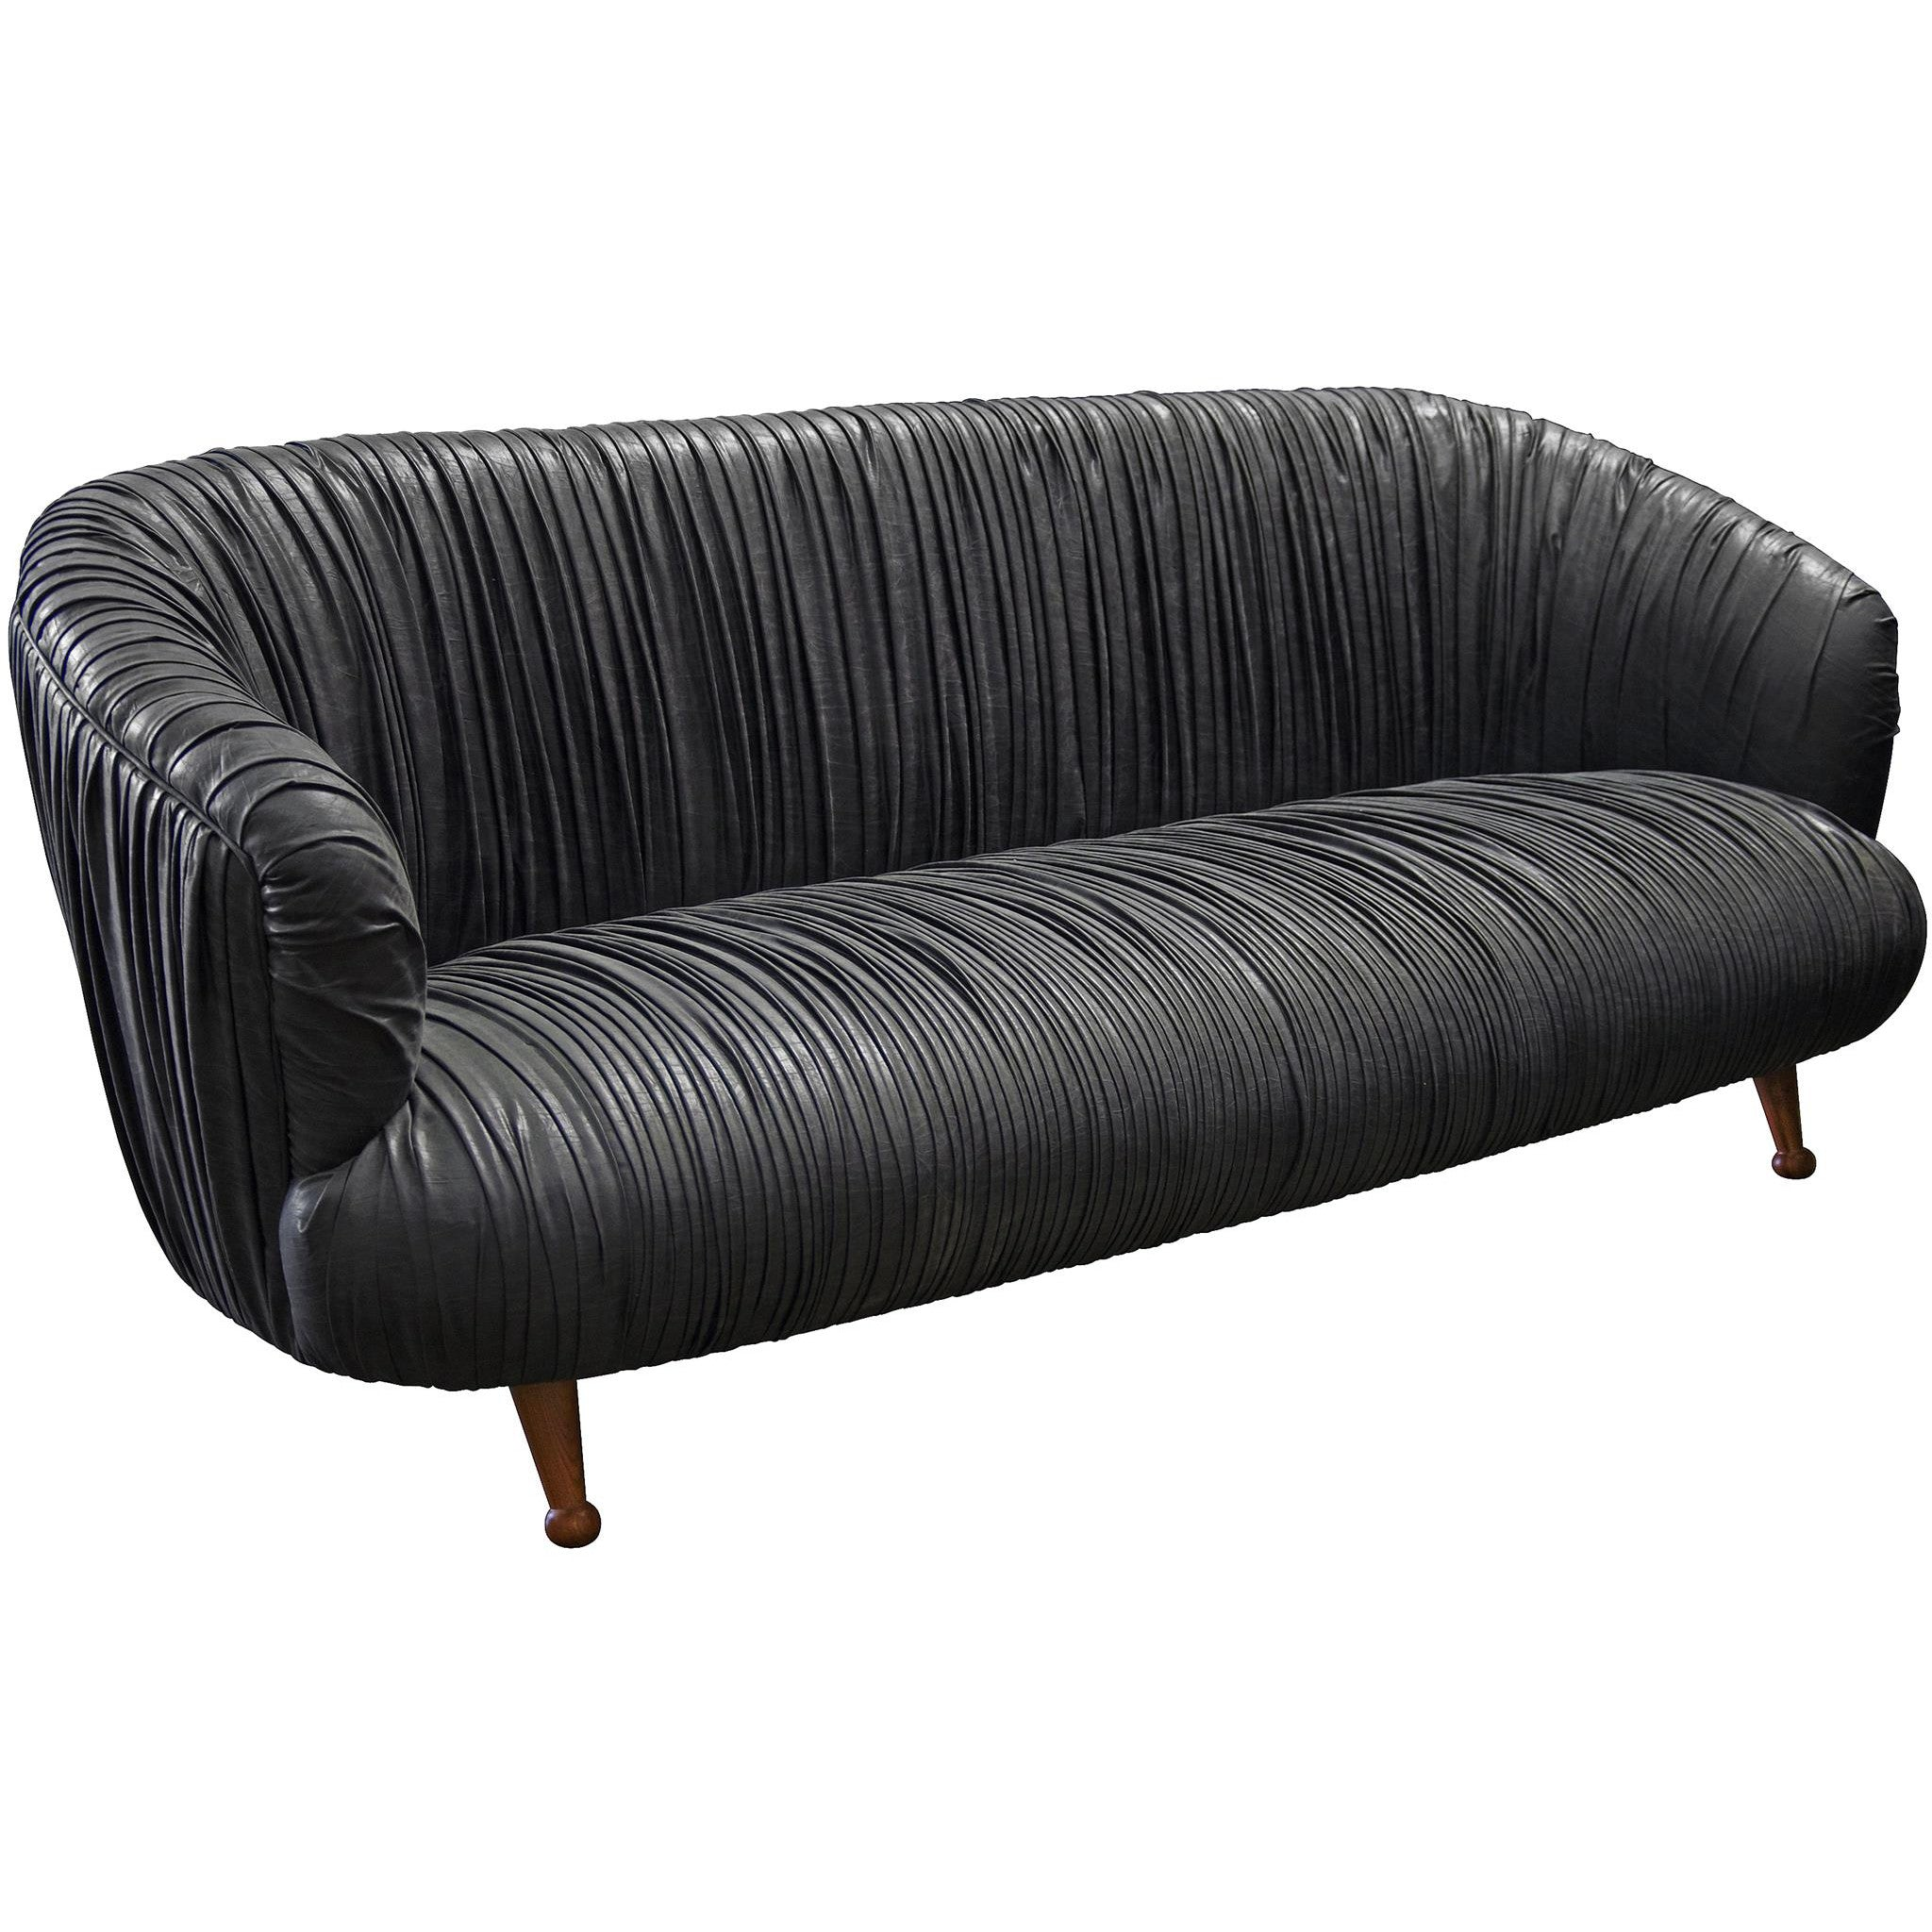 Black Glove Sofa - Black Rooster Decor